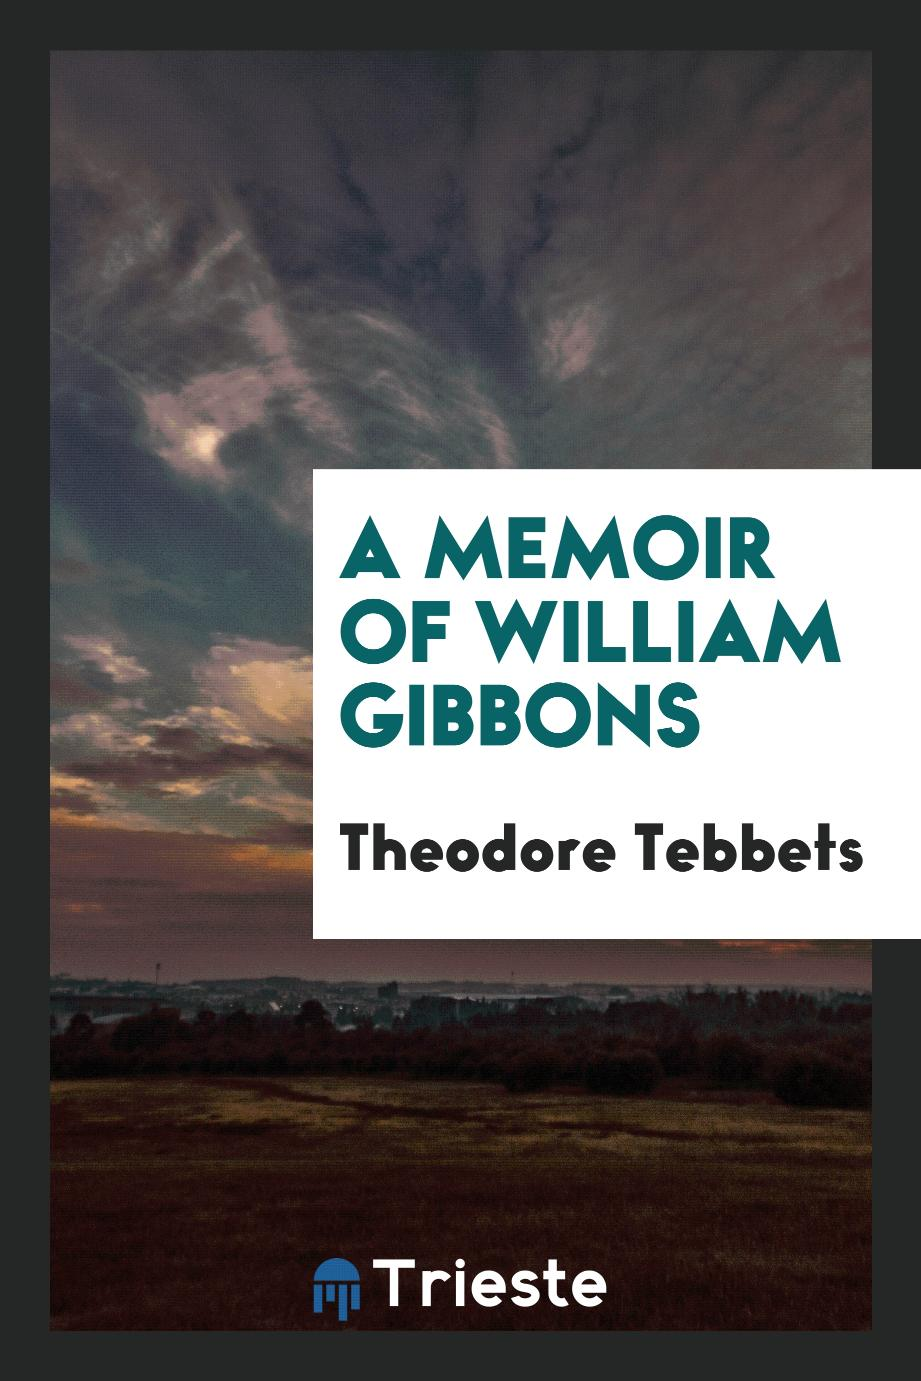 A Memoir of William Gibbons